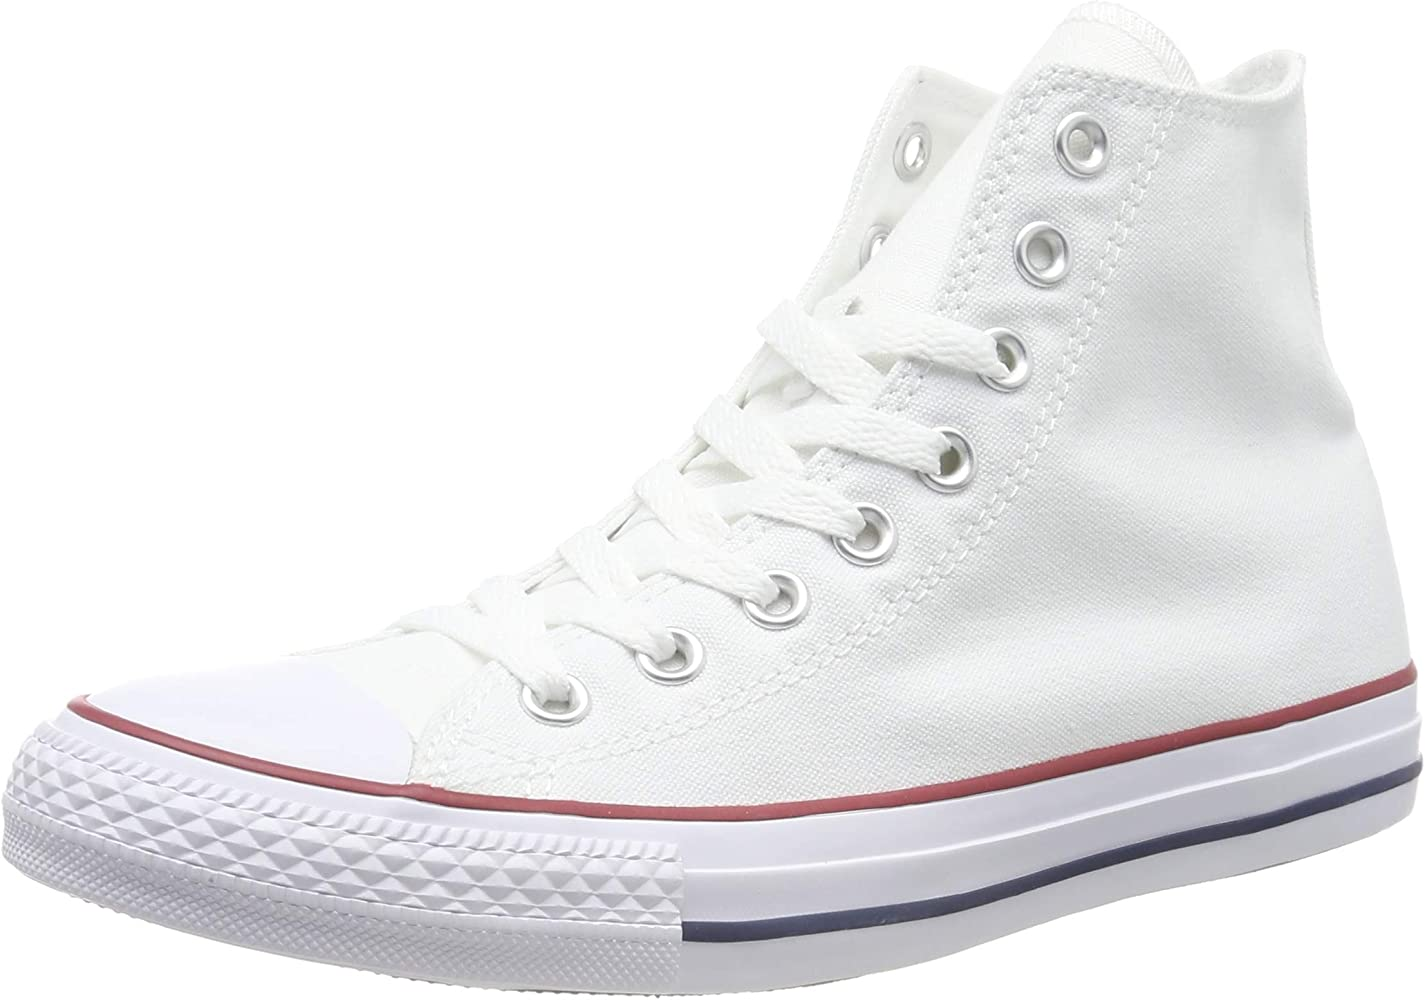 converse altaa gris 38 mujer